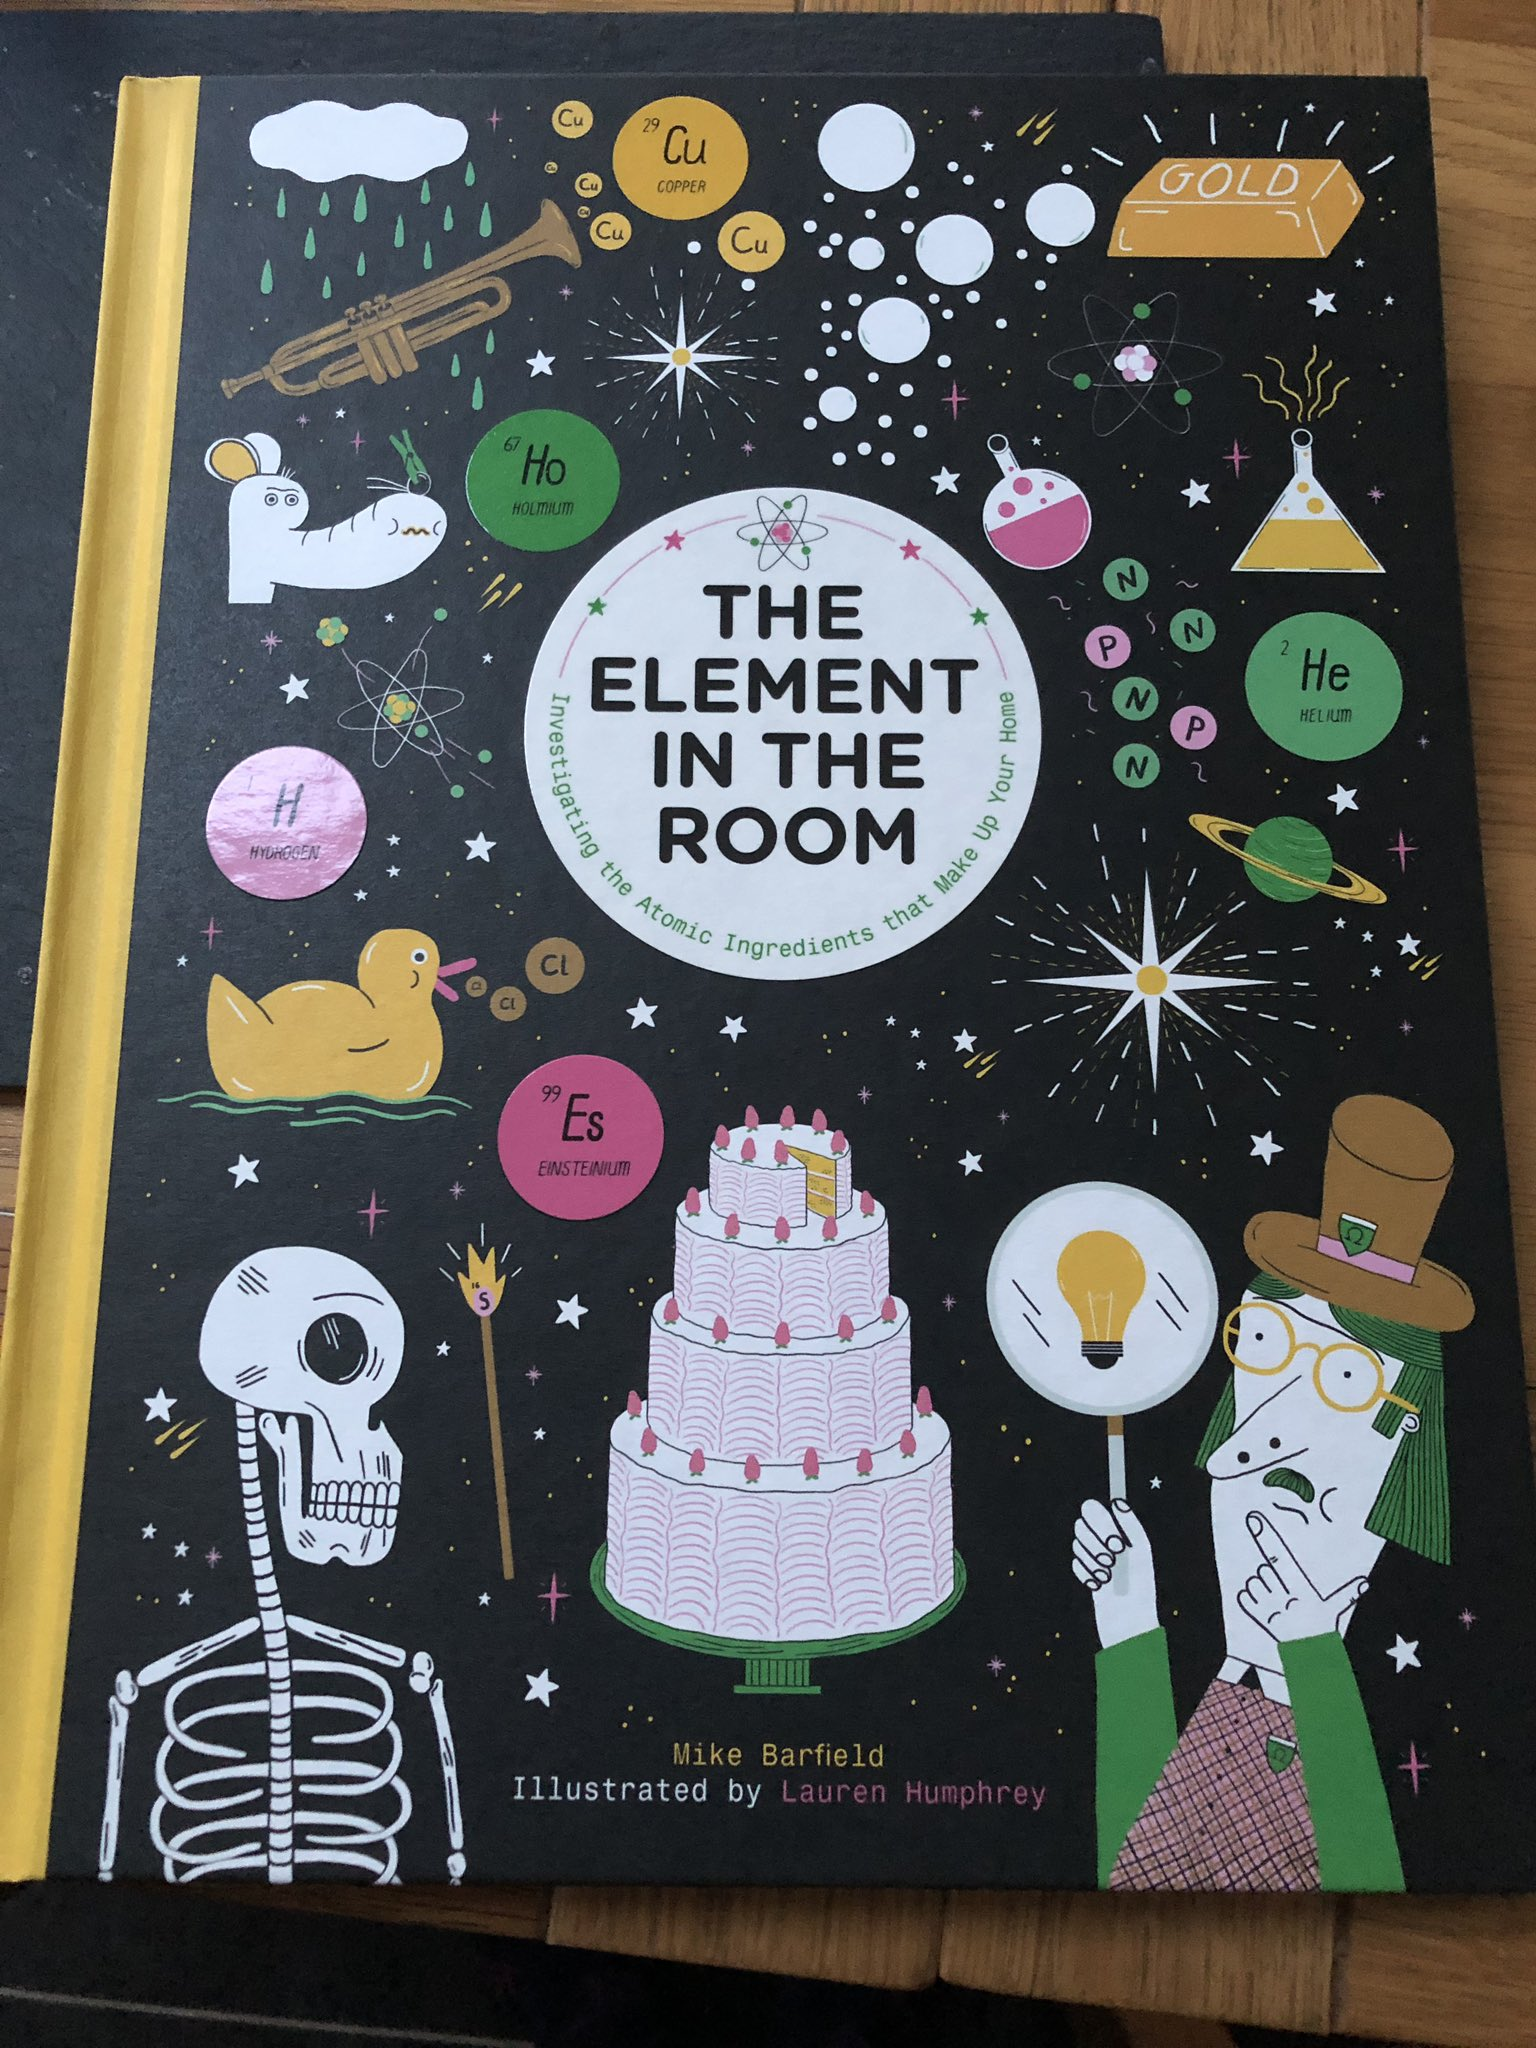 My 9yr old daughter bought a brilliant book today @jodrellbank so pleased she's becoming interested in science! #IYPT2019 #chemistry #sciencemum https://t.co/xRd3kzZ8HS